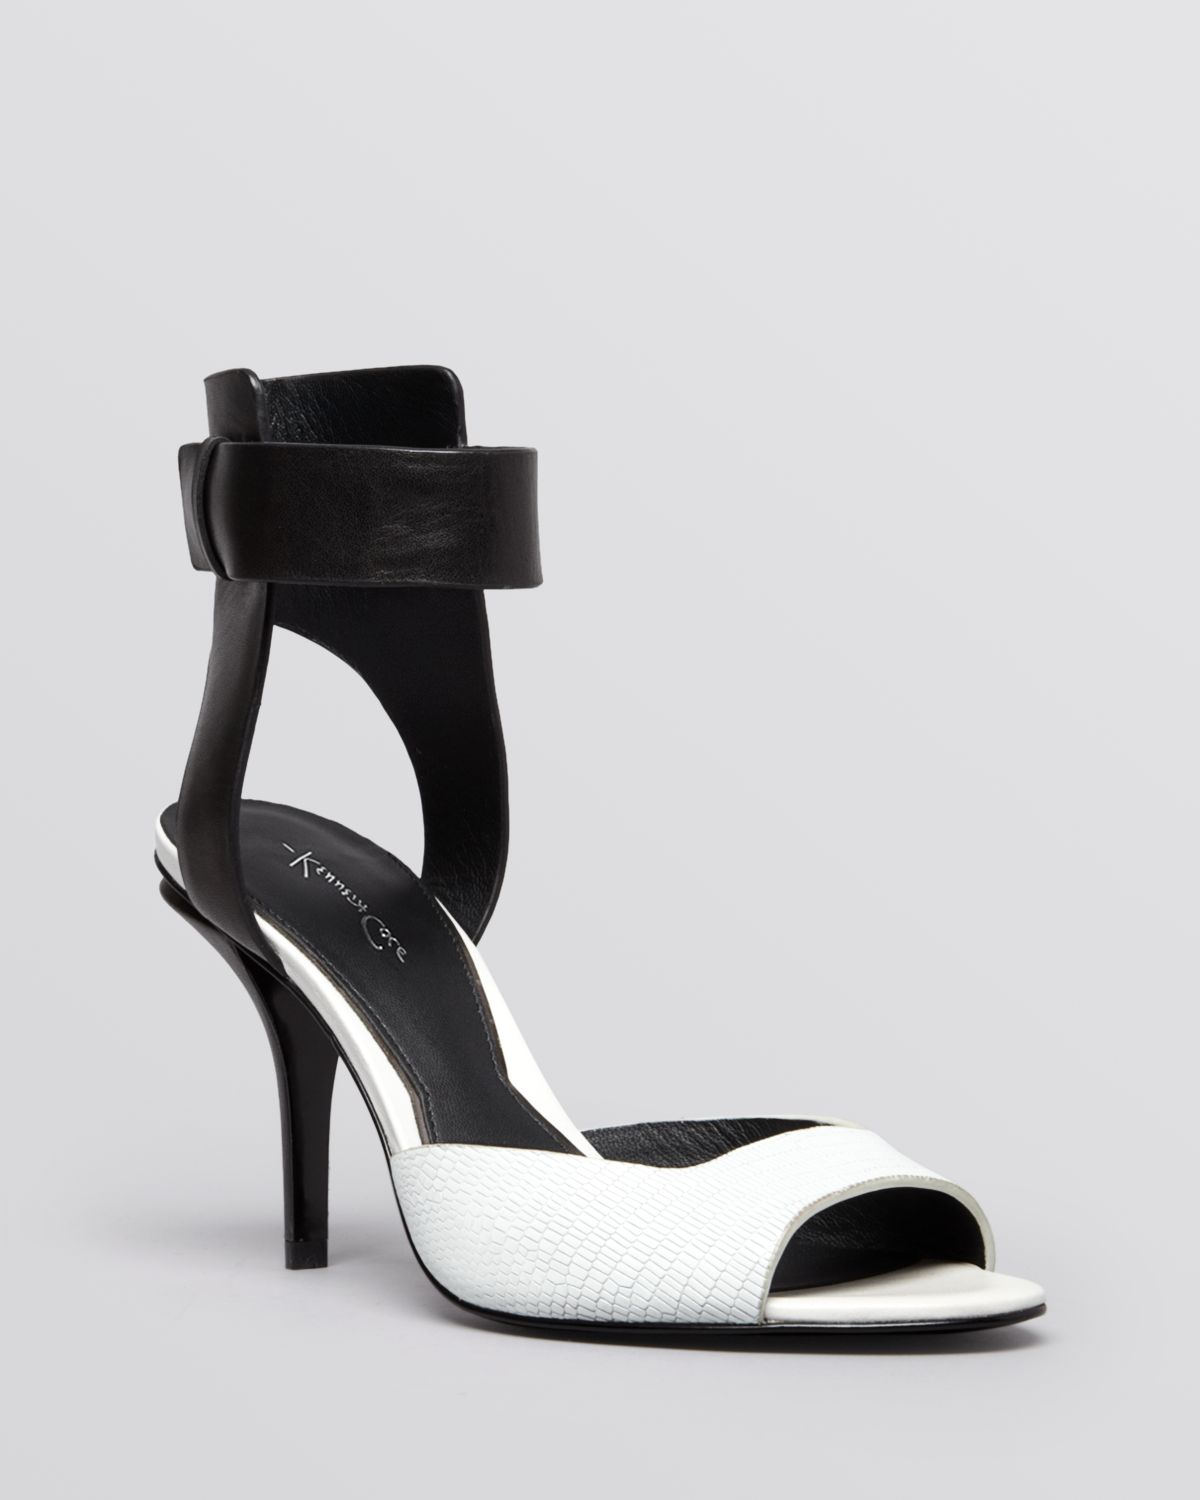 Kenneth cole Open Toe Sandals - Tudor High Heel in White | Lyst